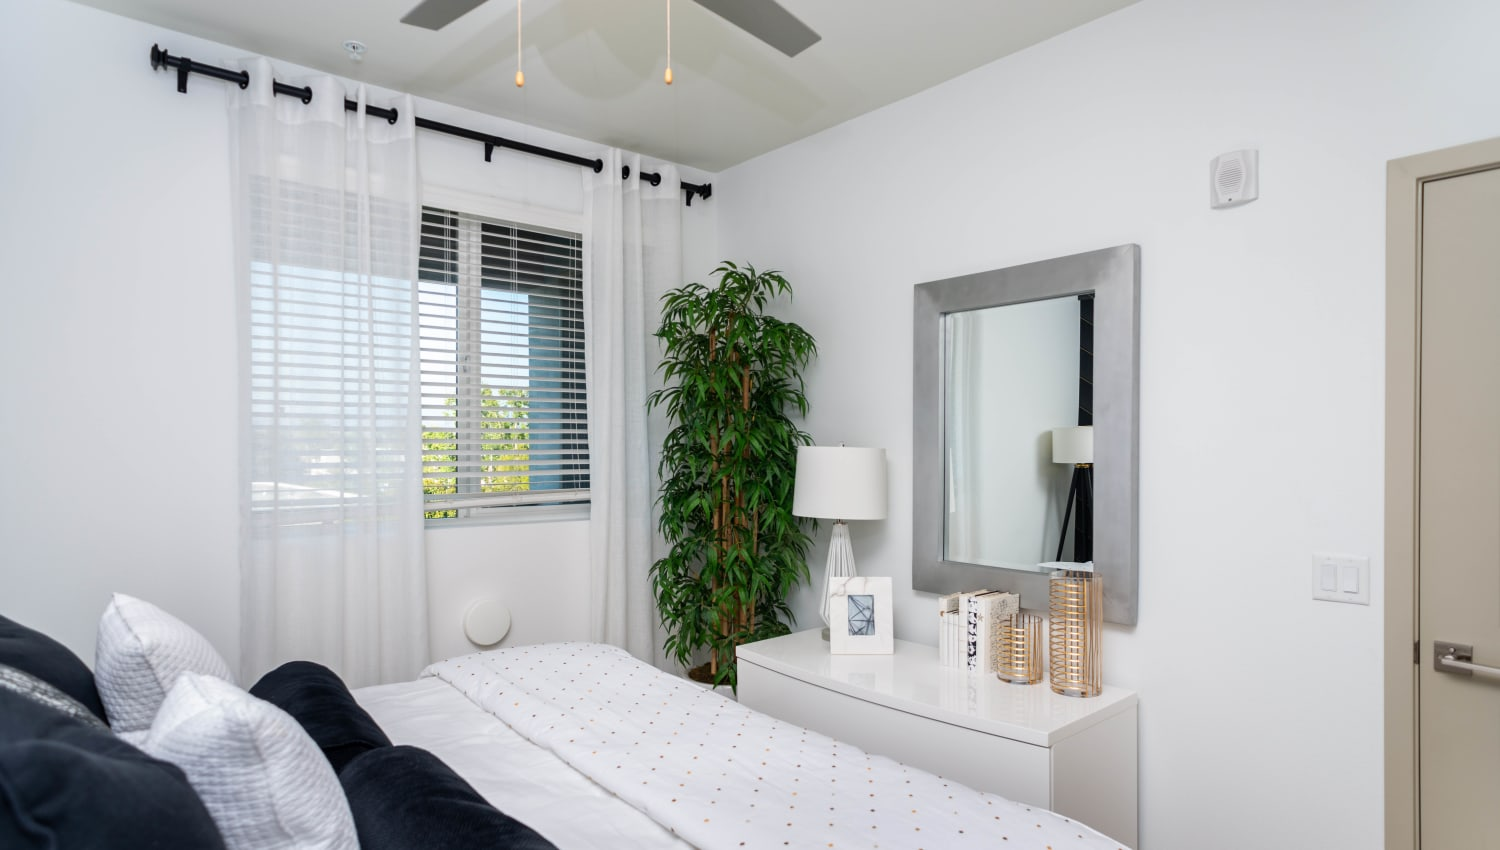 Ceiling fan in the well-furnished master bedroom of a model home at Fusion Apartments in Irvine, California